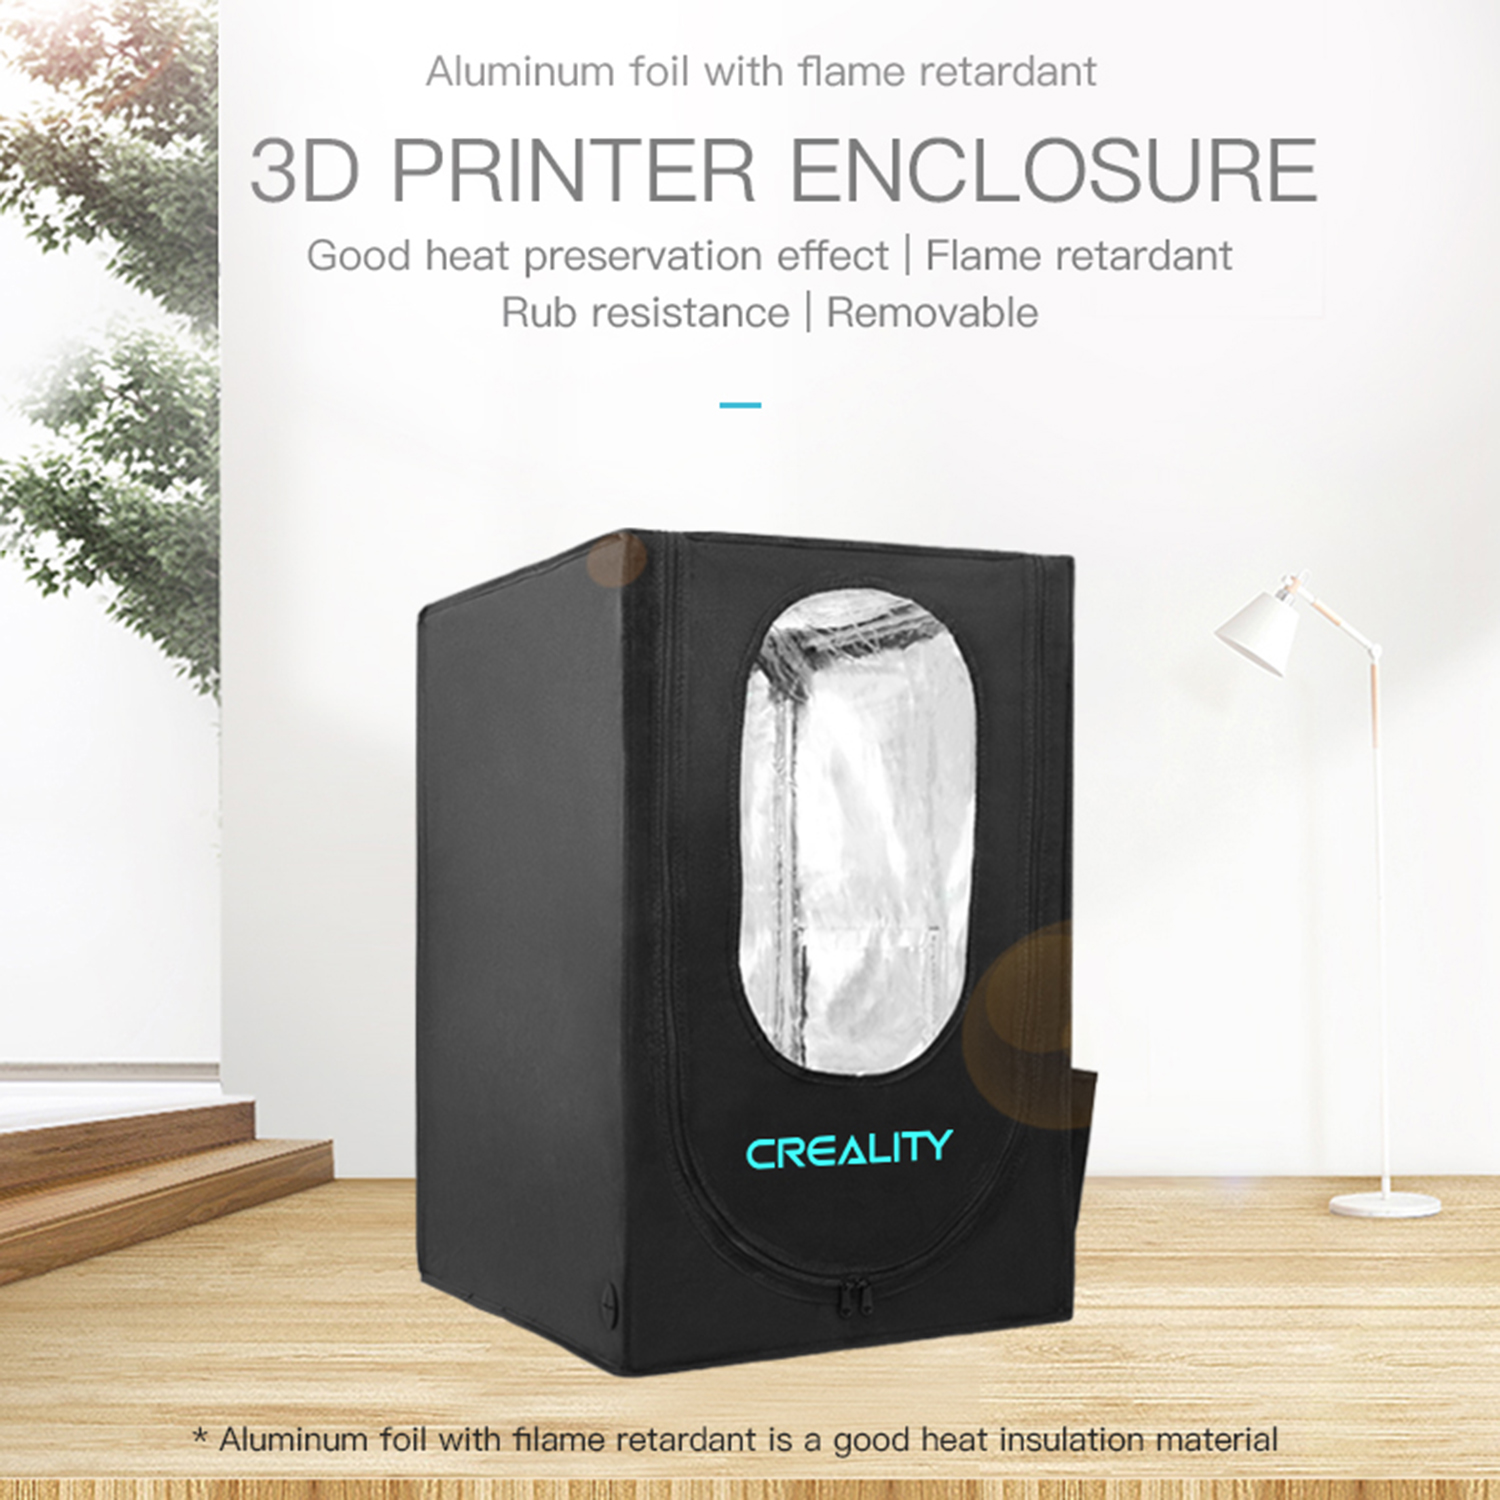 Creality 3D 3D Printer Enclosure Protection Cover Heat Preservation Flame Retardant for Ender-3 Series/CP-01/Ender-2/CR-100 Malaysia